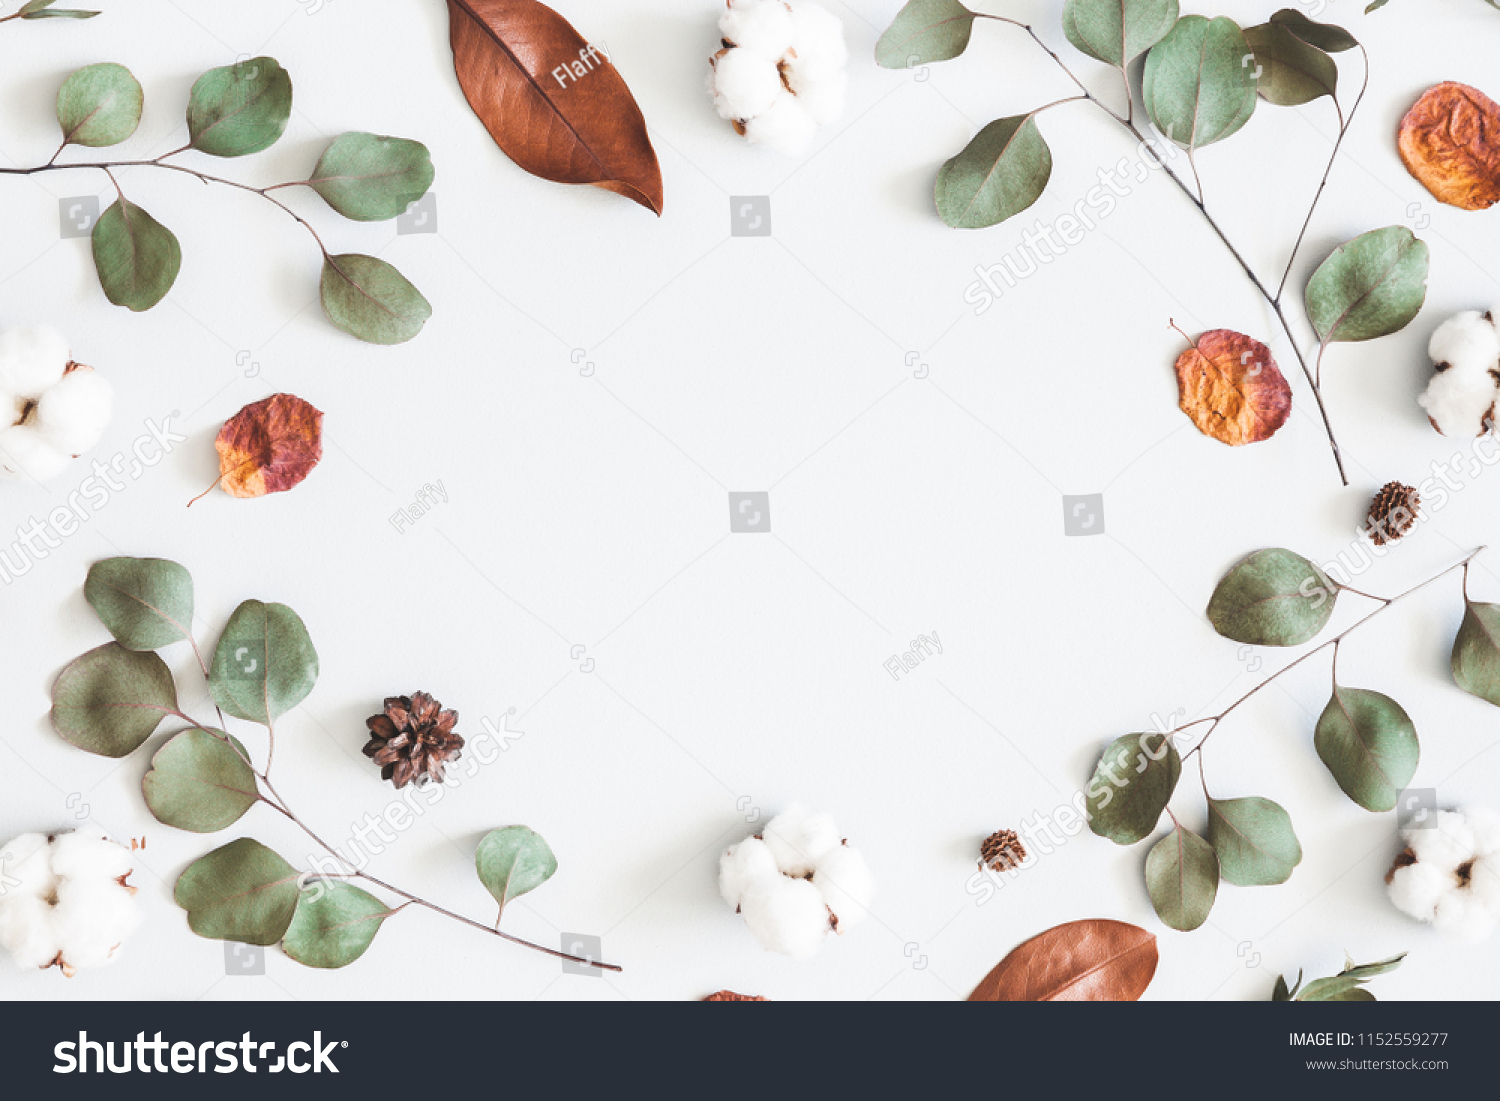 Autumn composition. Frame made of eucalyptus branches, cotton flowers, dried leaves on pastel gray background. Autumn, fall concept. Flat lay, top view, copy space #1152559277